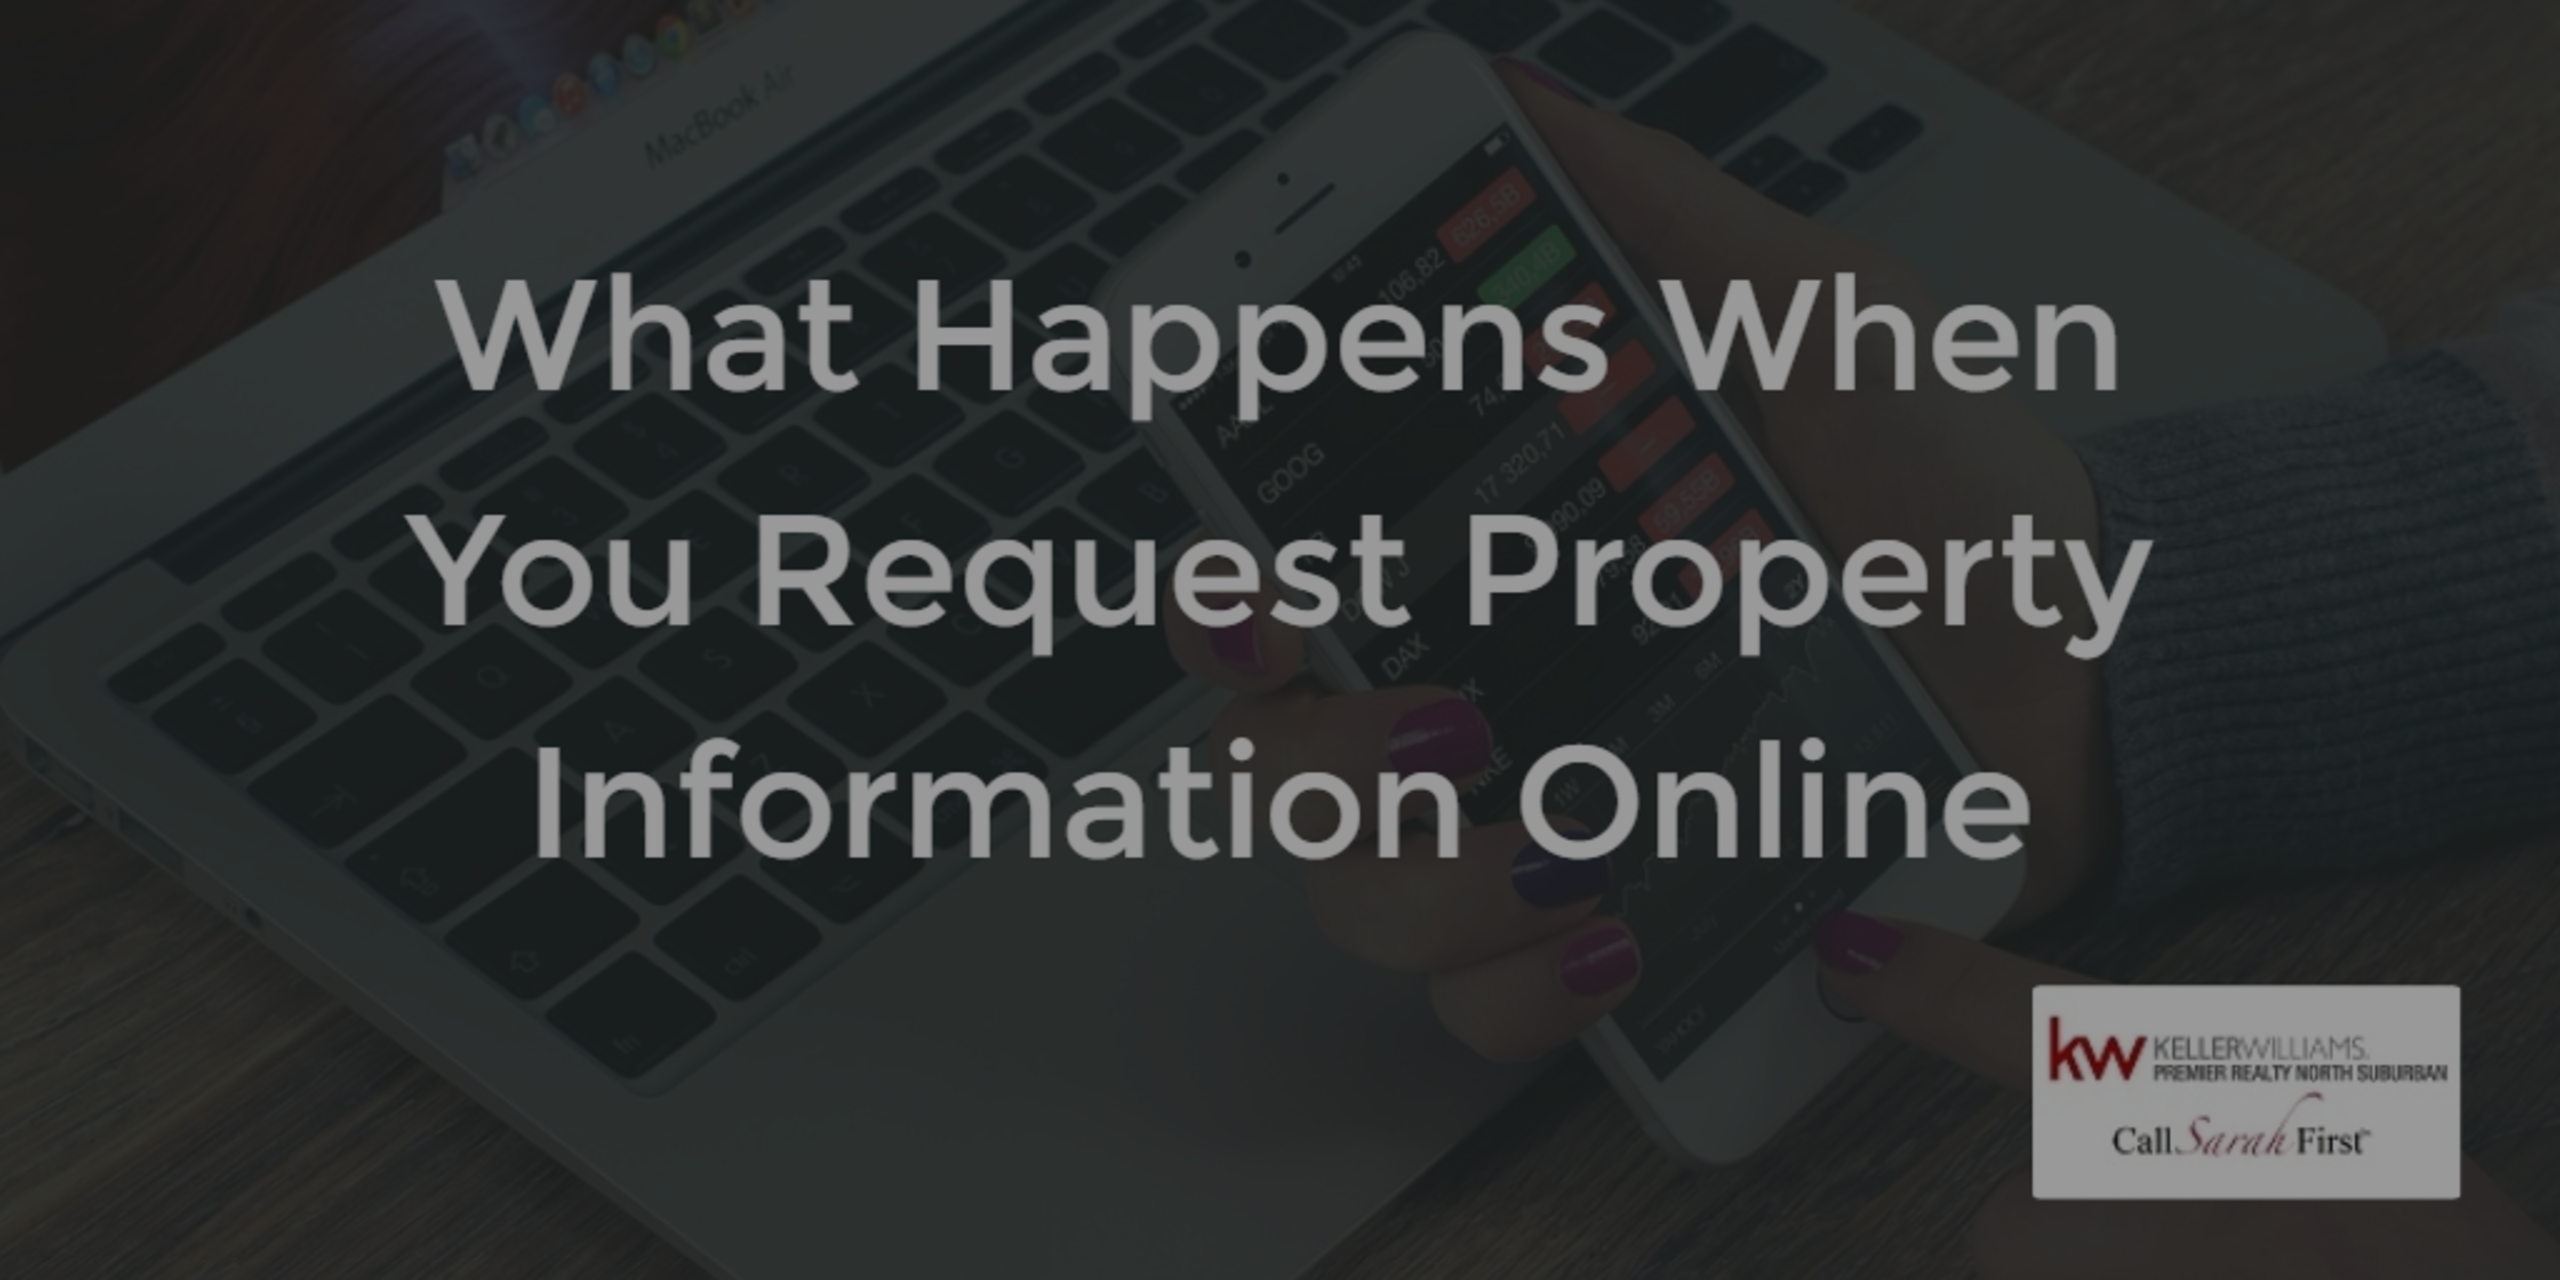 What Happens When You Request Property Information Online